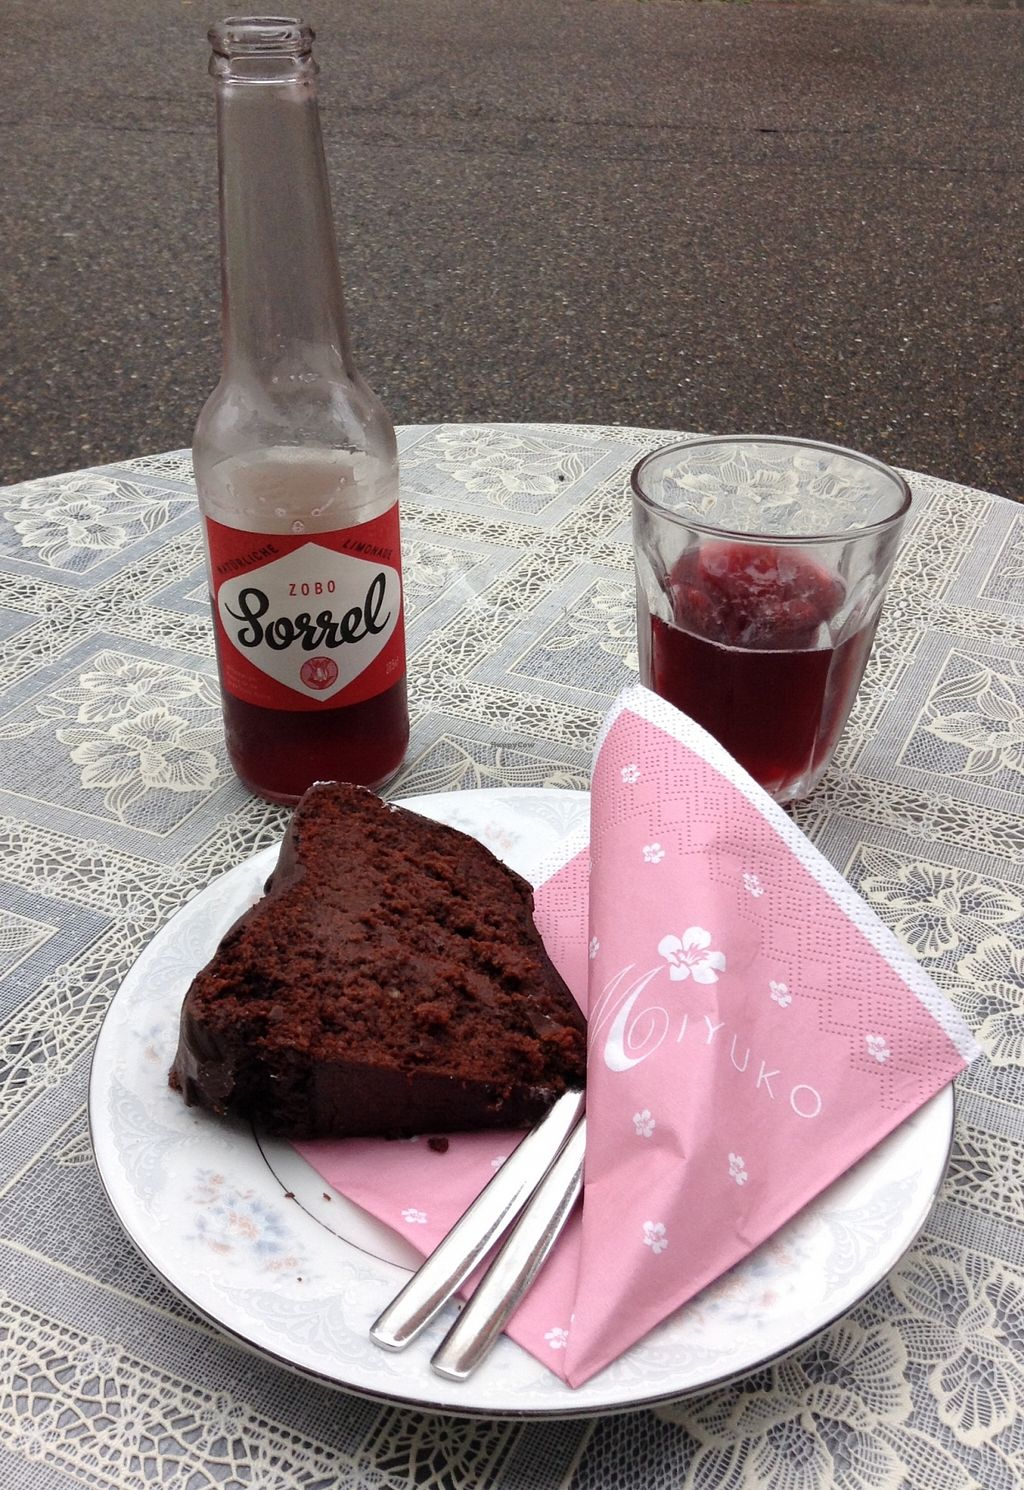 """Photo of Miyuko les Gourmandise  by <a href=""""/members/profile/Chakotay"""">Chakotay</a> <br/>Tasty cake and a original, alternative beverage.  <br/> October 14, 2015  - <a href='/contact/abuse/image/27378/121310'>Report</a>"""